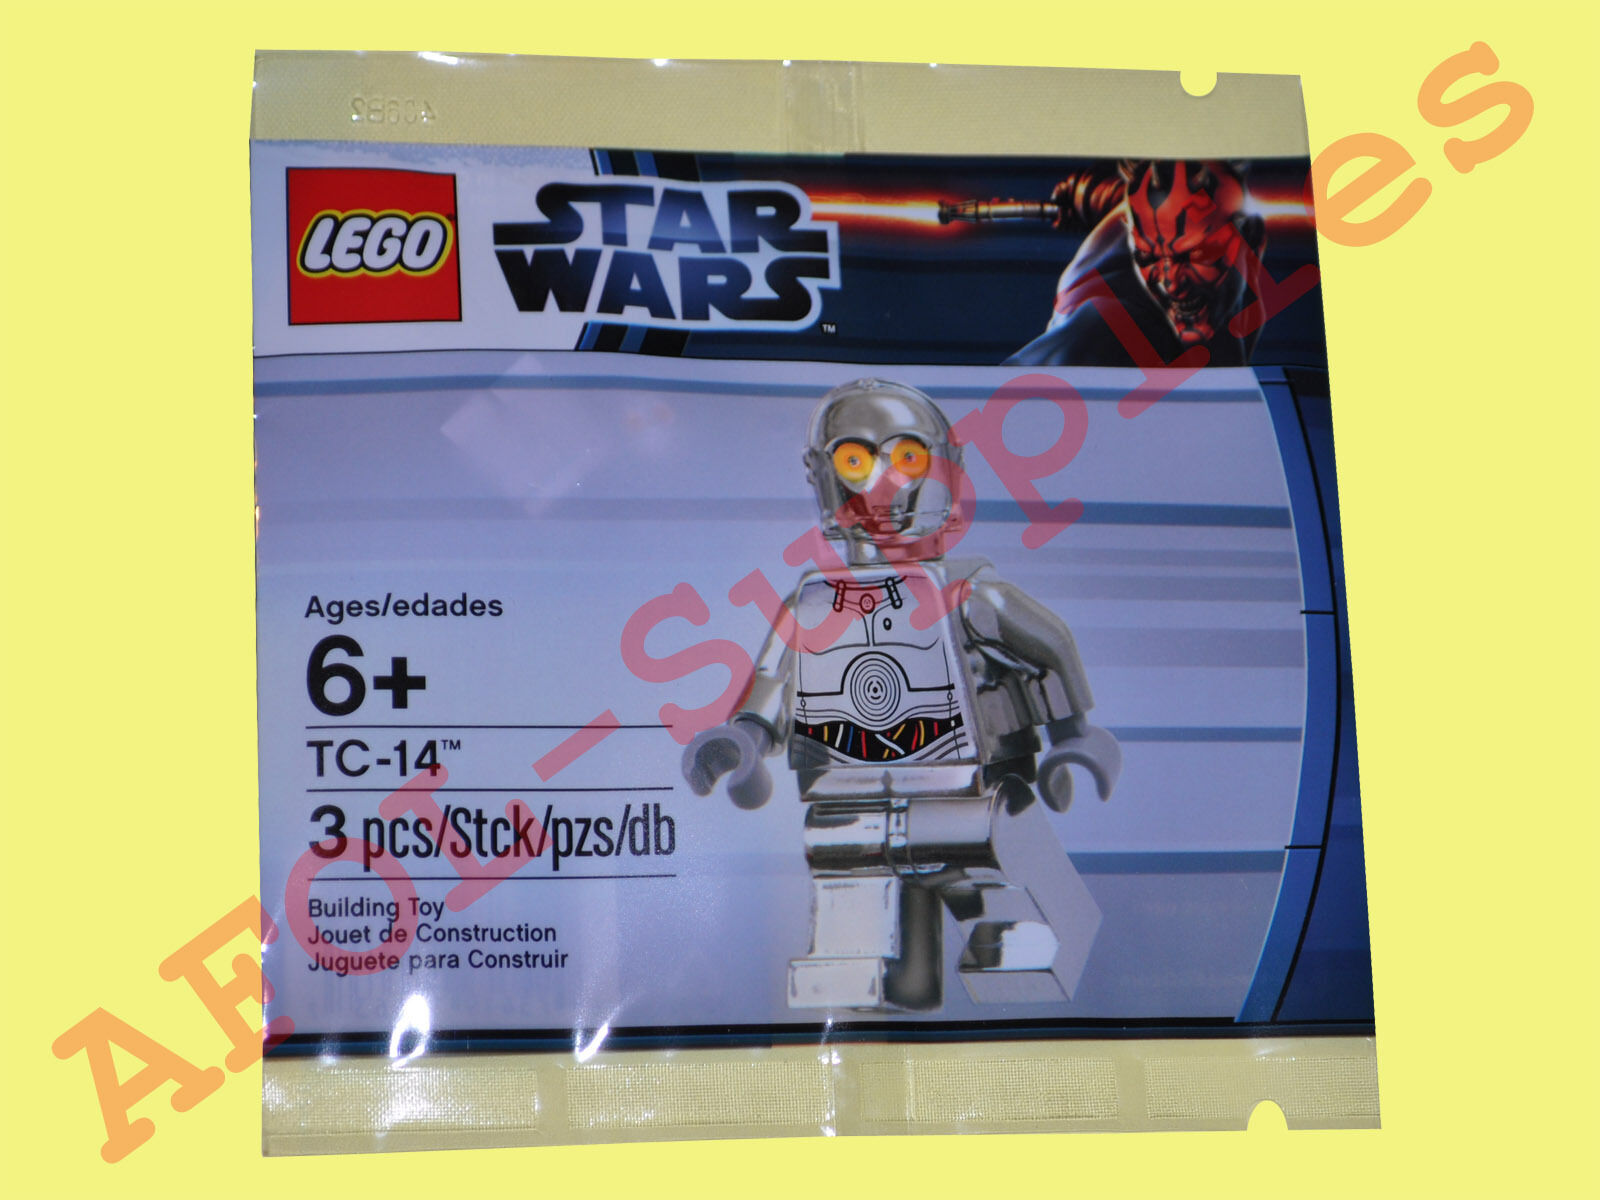 LEGO 6005192 star wars tc-14 Droid Droid Droid Chrome Limited Edition personnage polybag 1b1e87